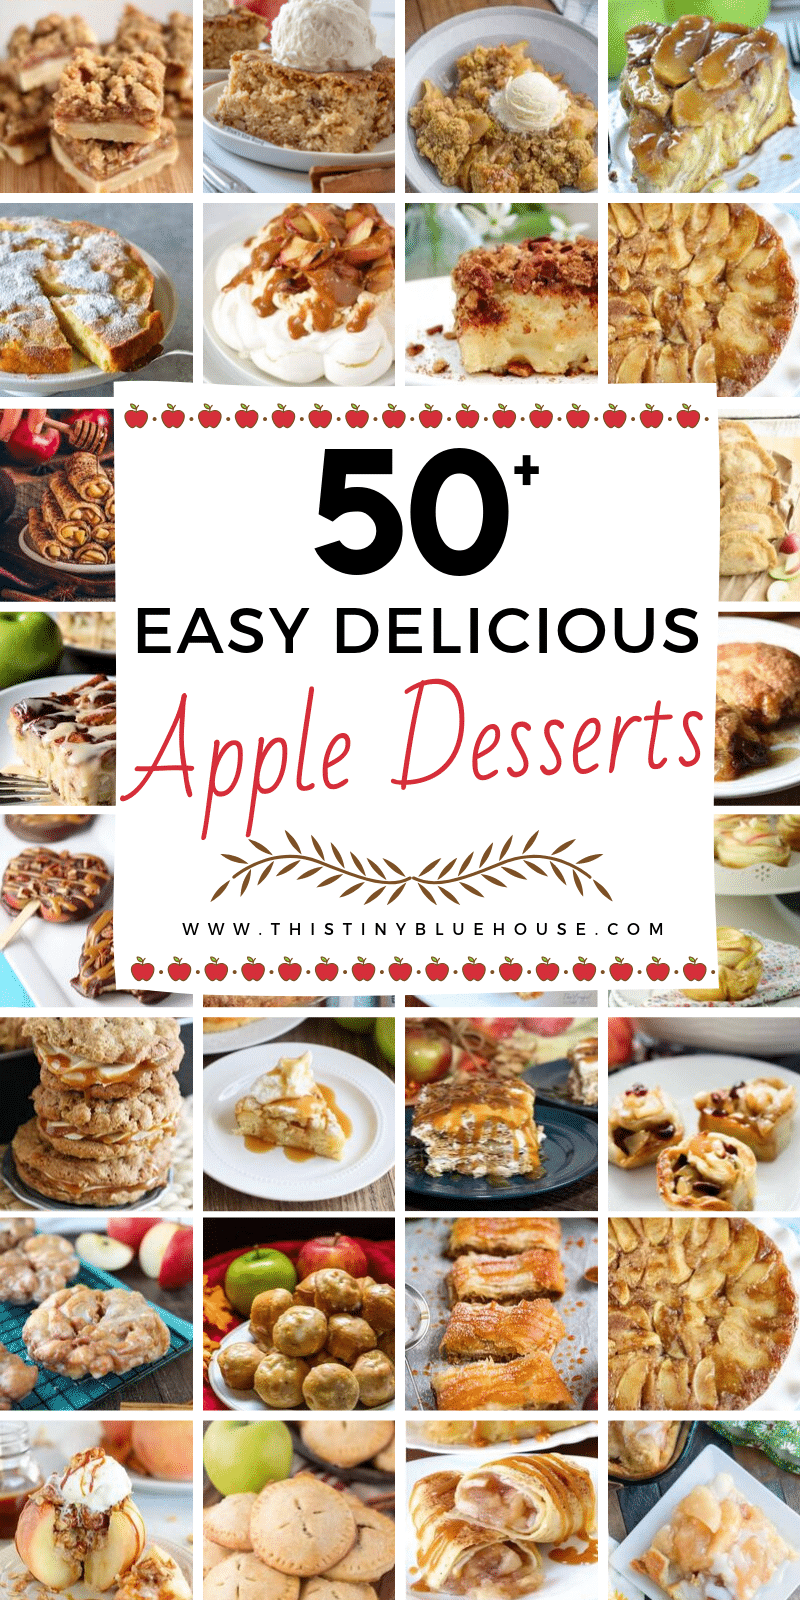 Are you looking for delicious fall apple desserts? Here are over 50 best fall apple desserts that are the perfect way to bake with yummy apples.#applerecipes #appledessertrecipes #applerecipesbaked #easyappledessertrecipes